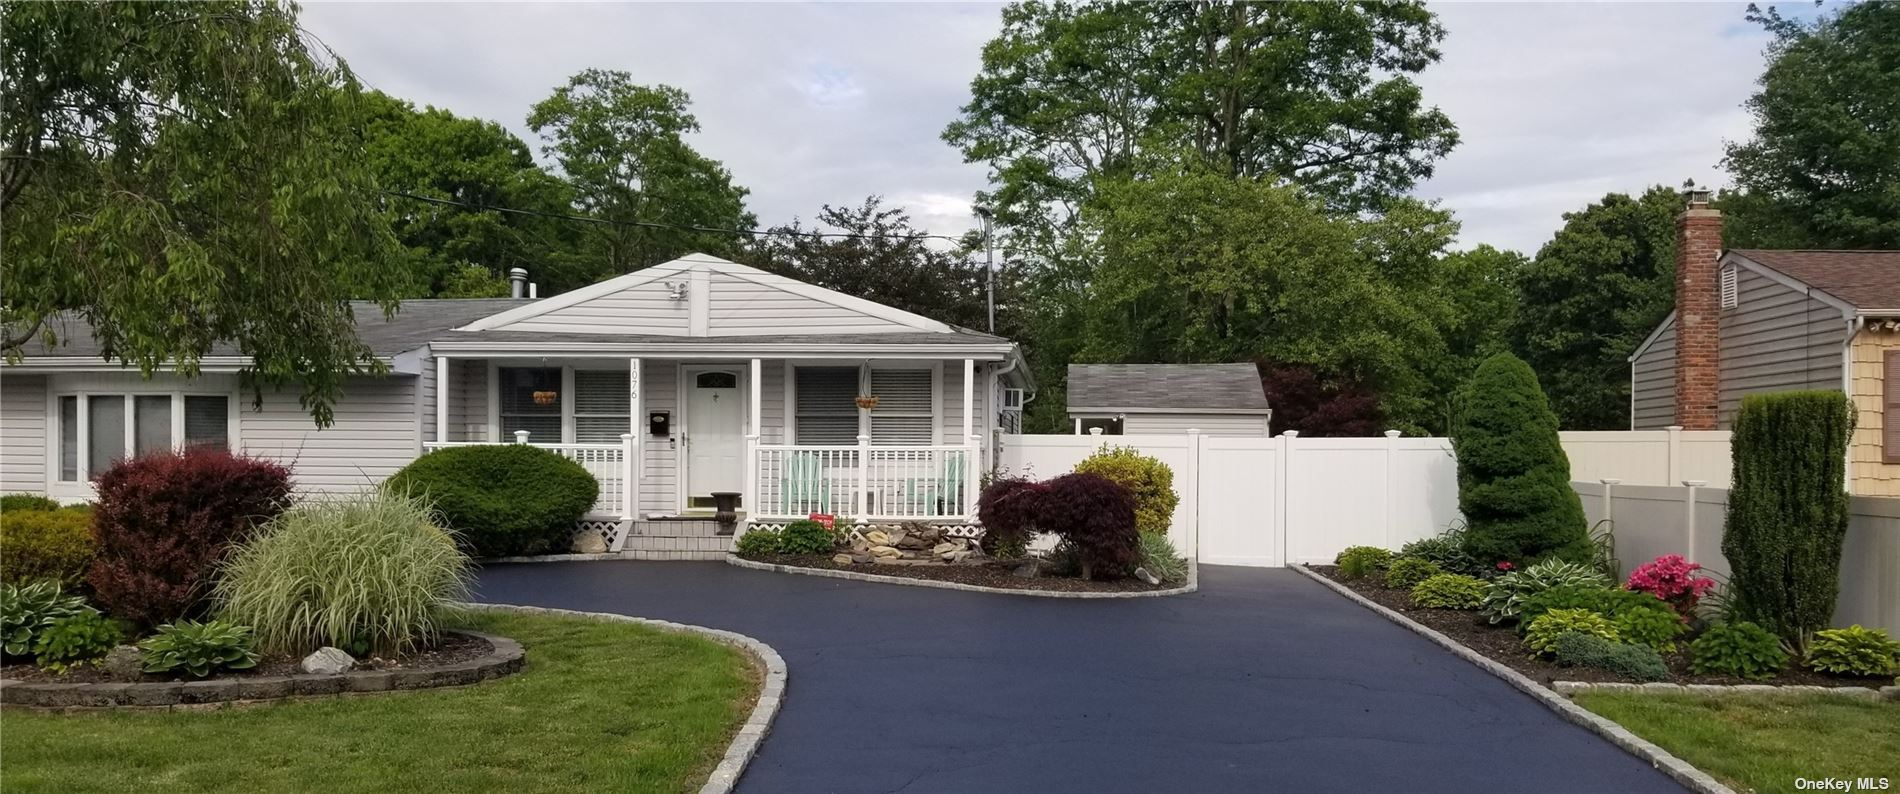 1076 Martinstein Avenue, Bay Shore, NY 11706 - MLS#: 3294624